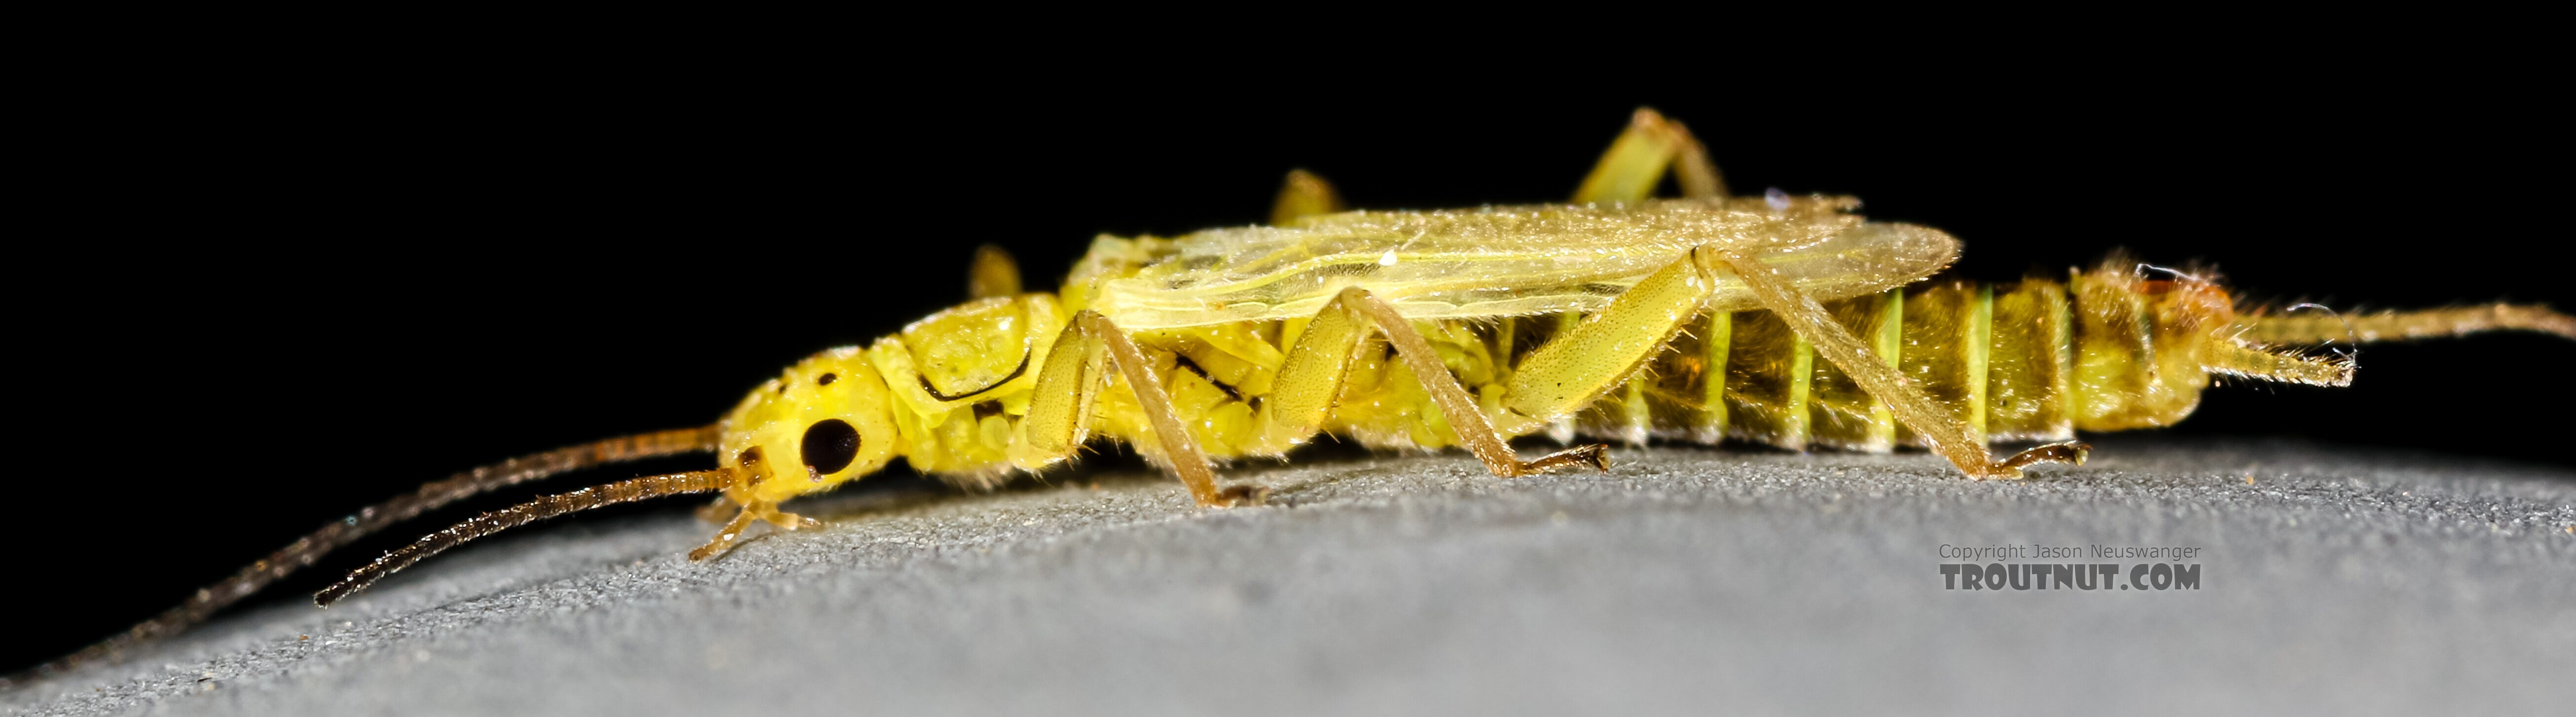 Male Chloroperlidae (Sallflies) Stonefly Adult from Green Lake Outlet in Idaho